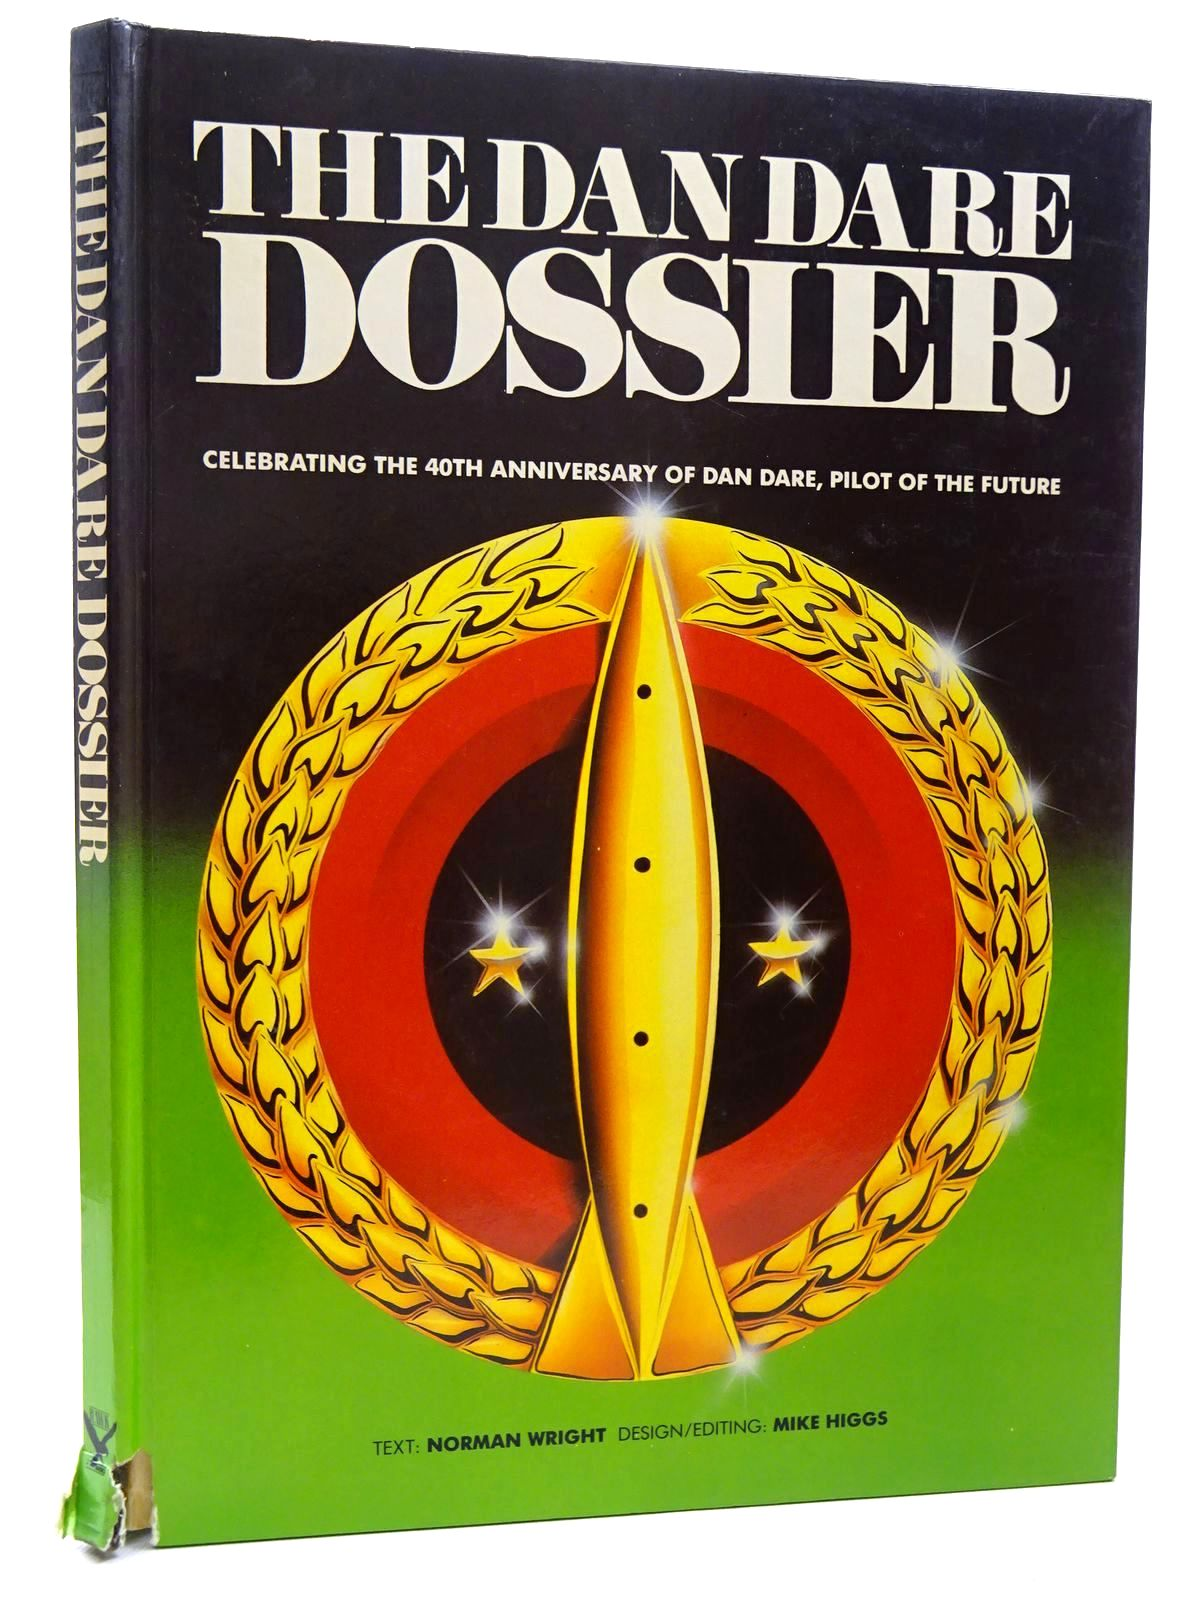 Photo of THE DAN DARE DOSSIER written by Wright, Norman published by Hawk Books Ltd. (STOCK CODE: 2124550)  for sale by Stella & Rose's Books